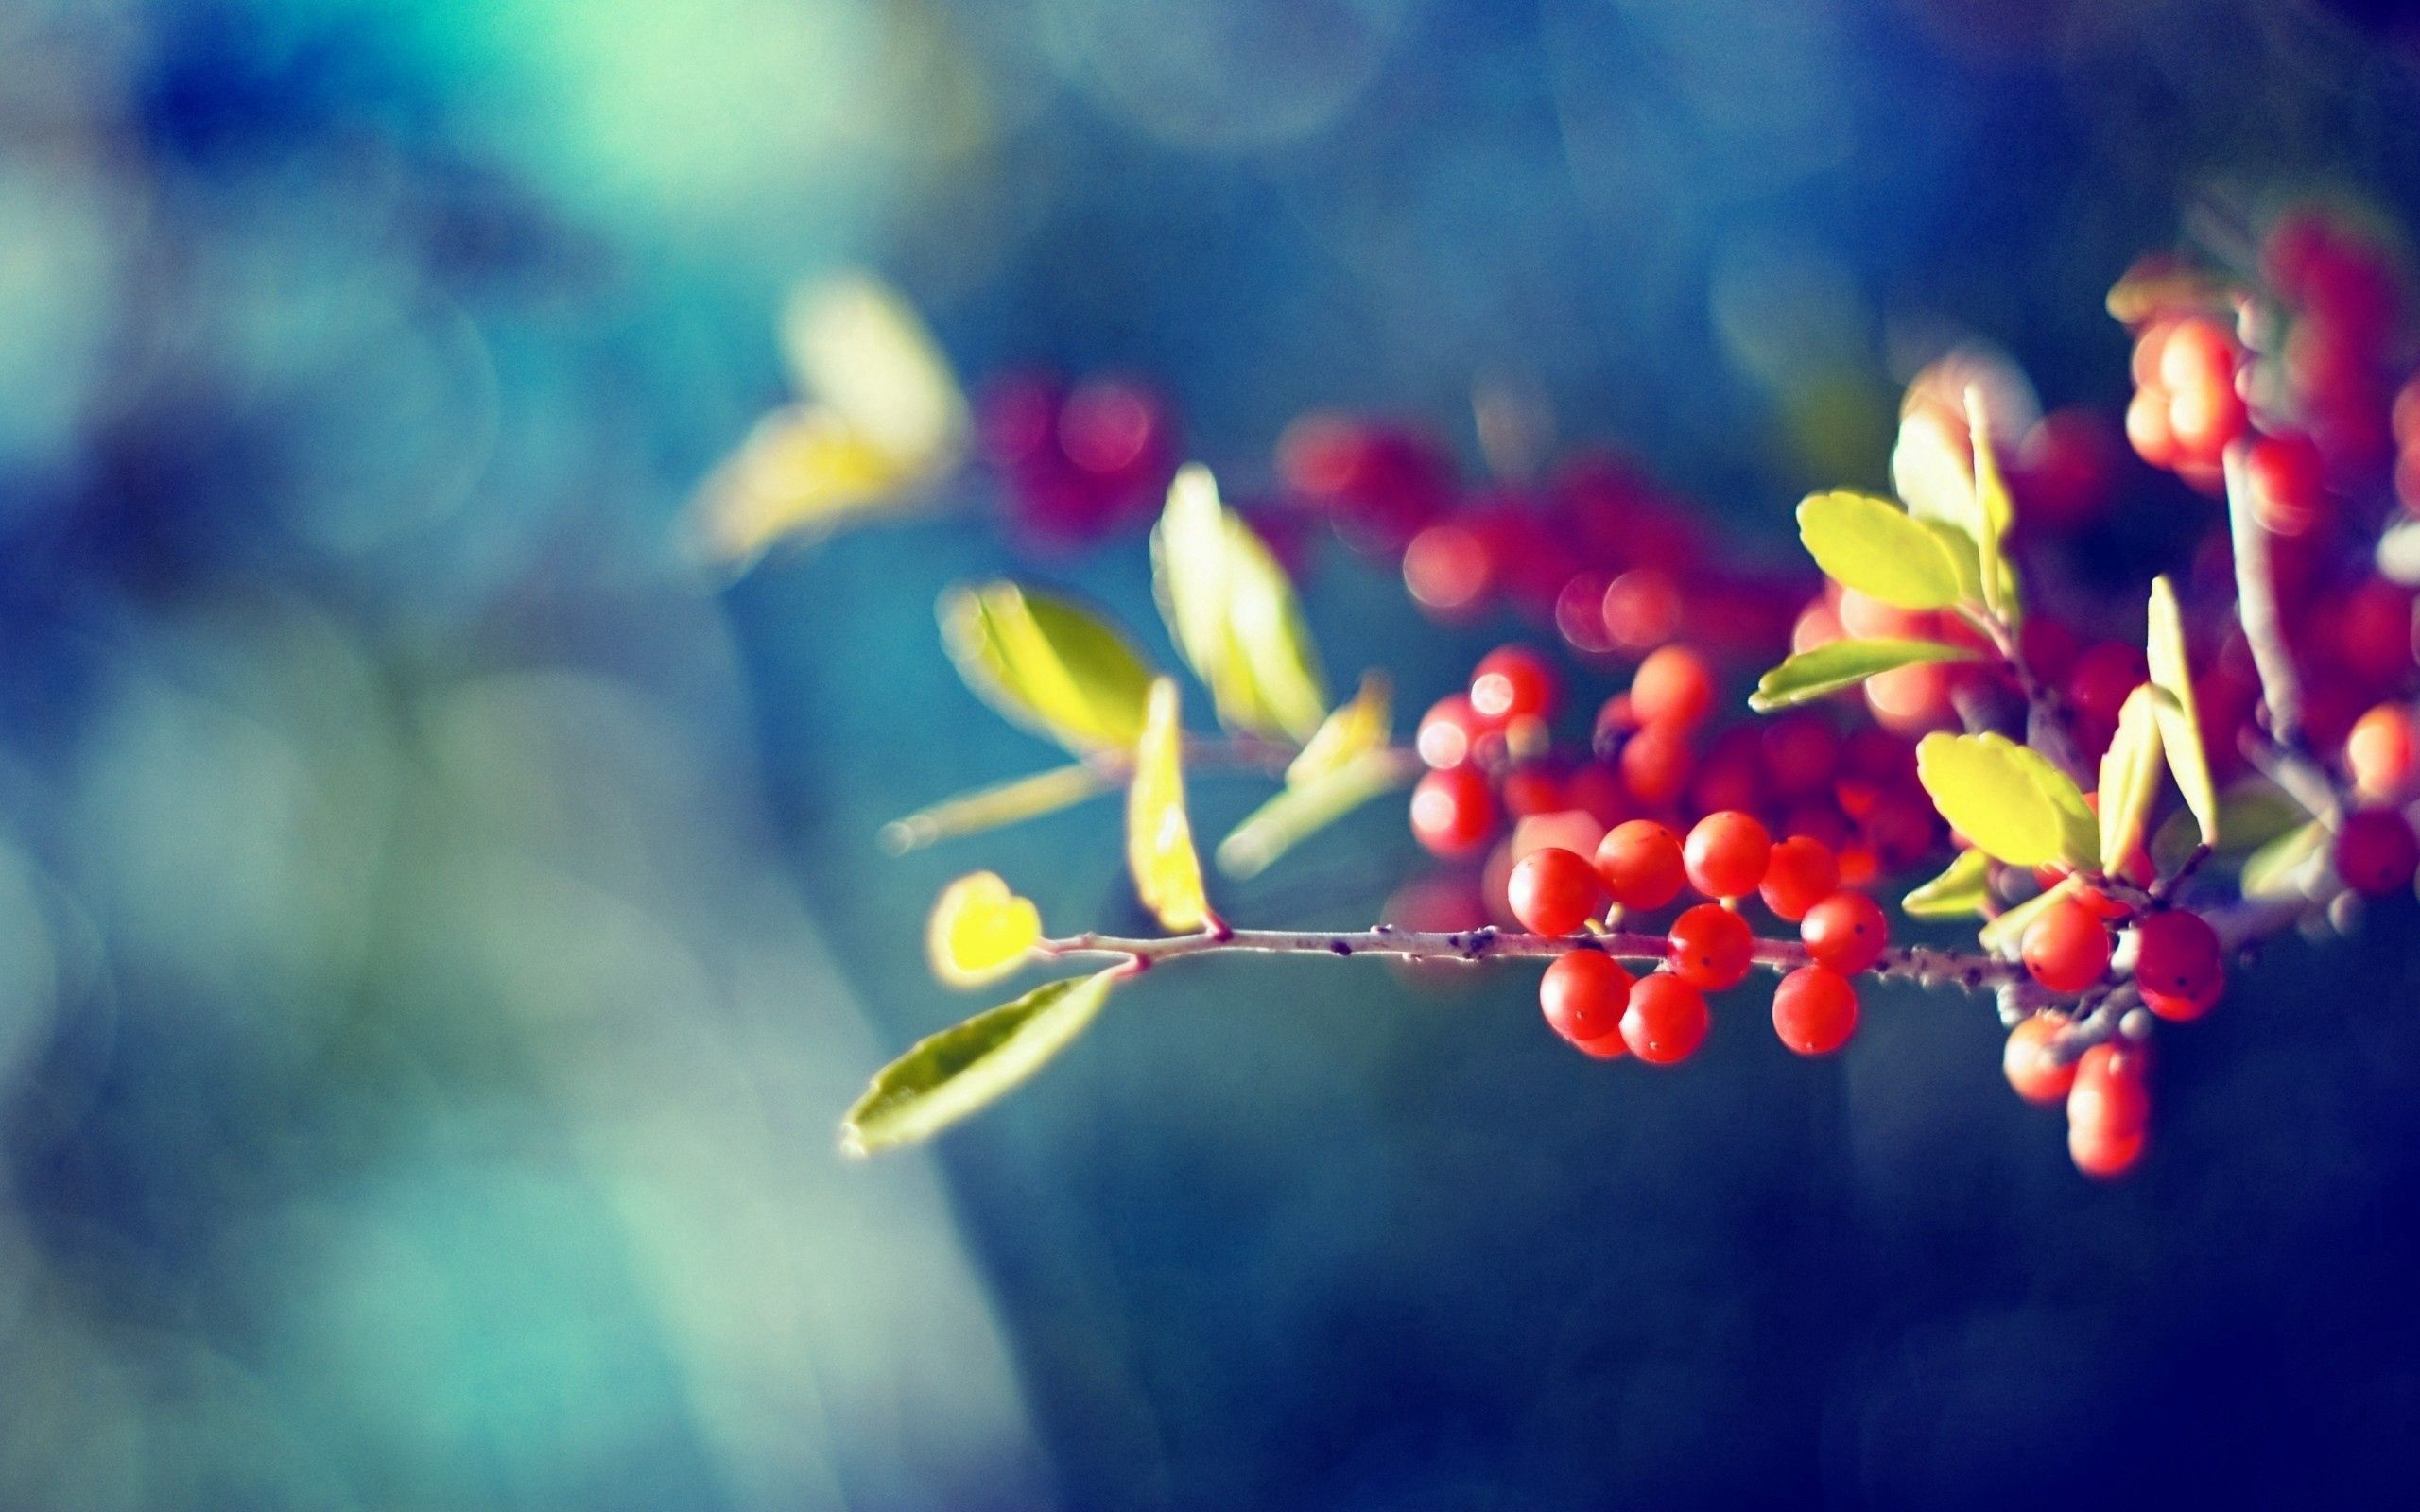 83968 download wallpaper Macro, Branch, Glare, Leaves, Berries screensavers and pictures for free